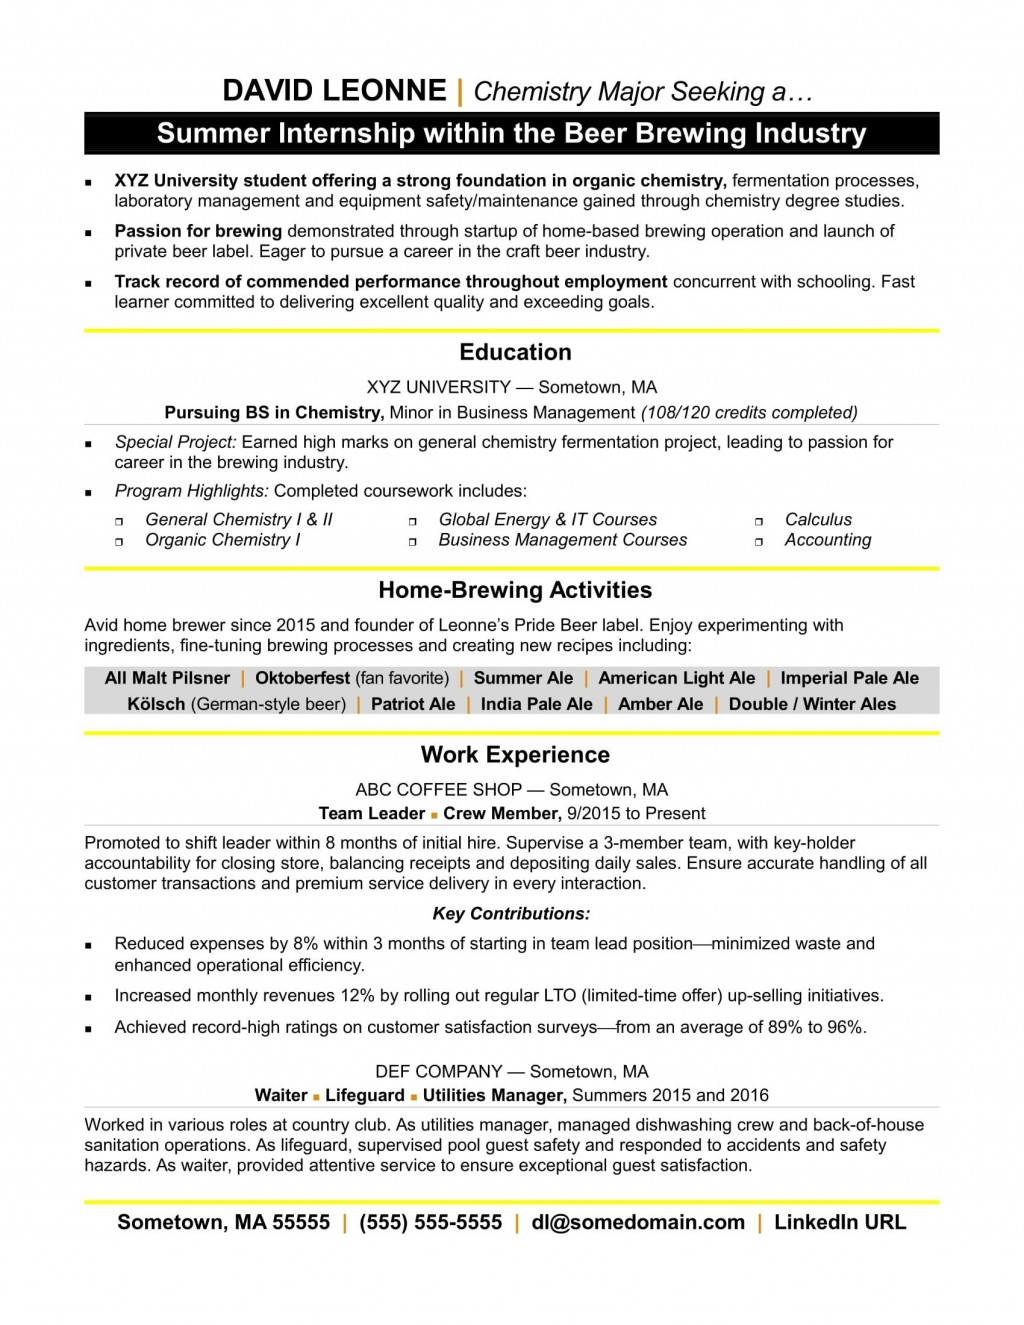 004 Beautiful Resume Template For Intern Picture  Interns Internship In Engineering Law ExampleLarge